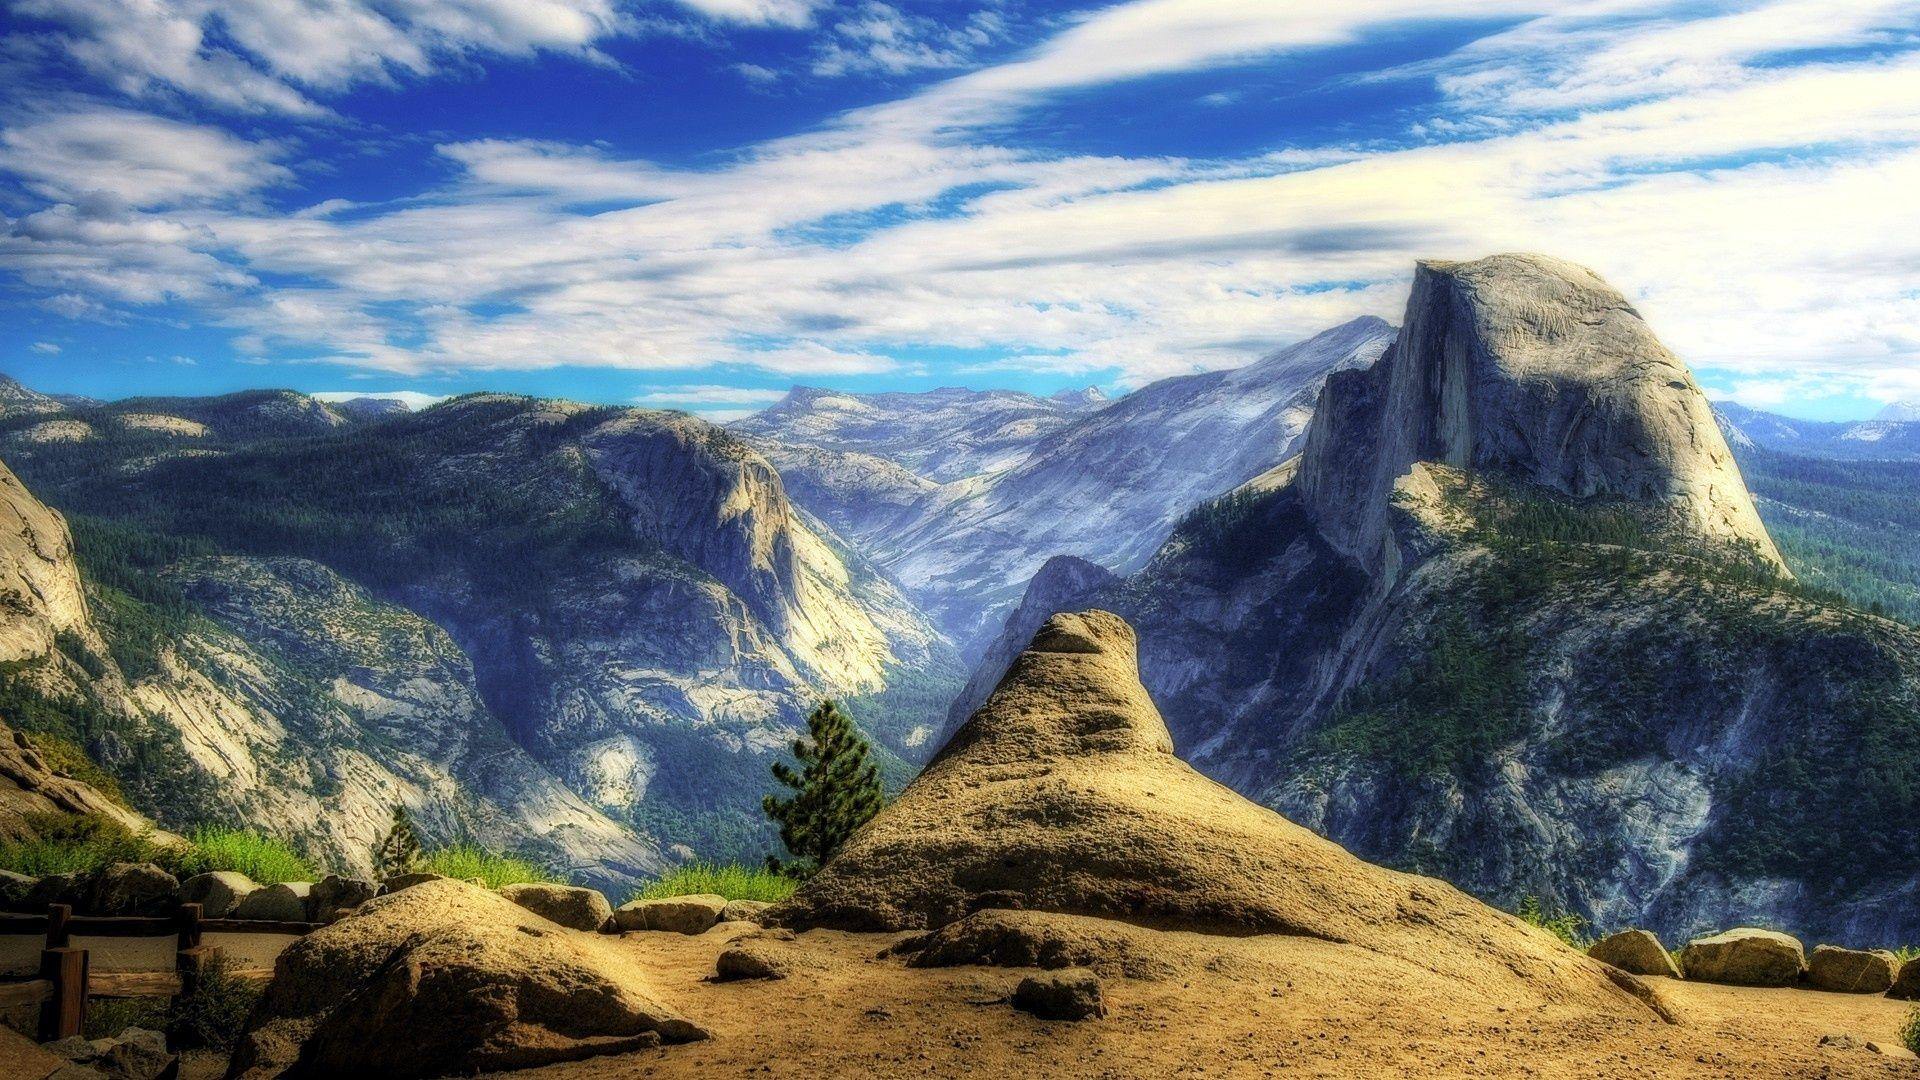 Nature wallpaper [1920x1080] via Classy Bro | Cool Wallpapers ...